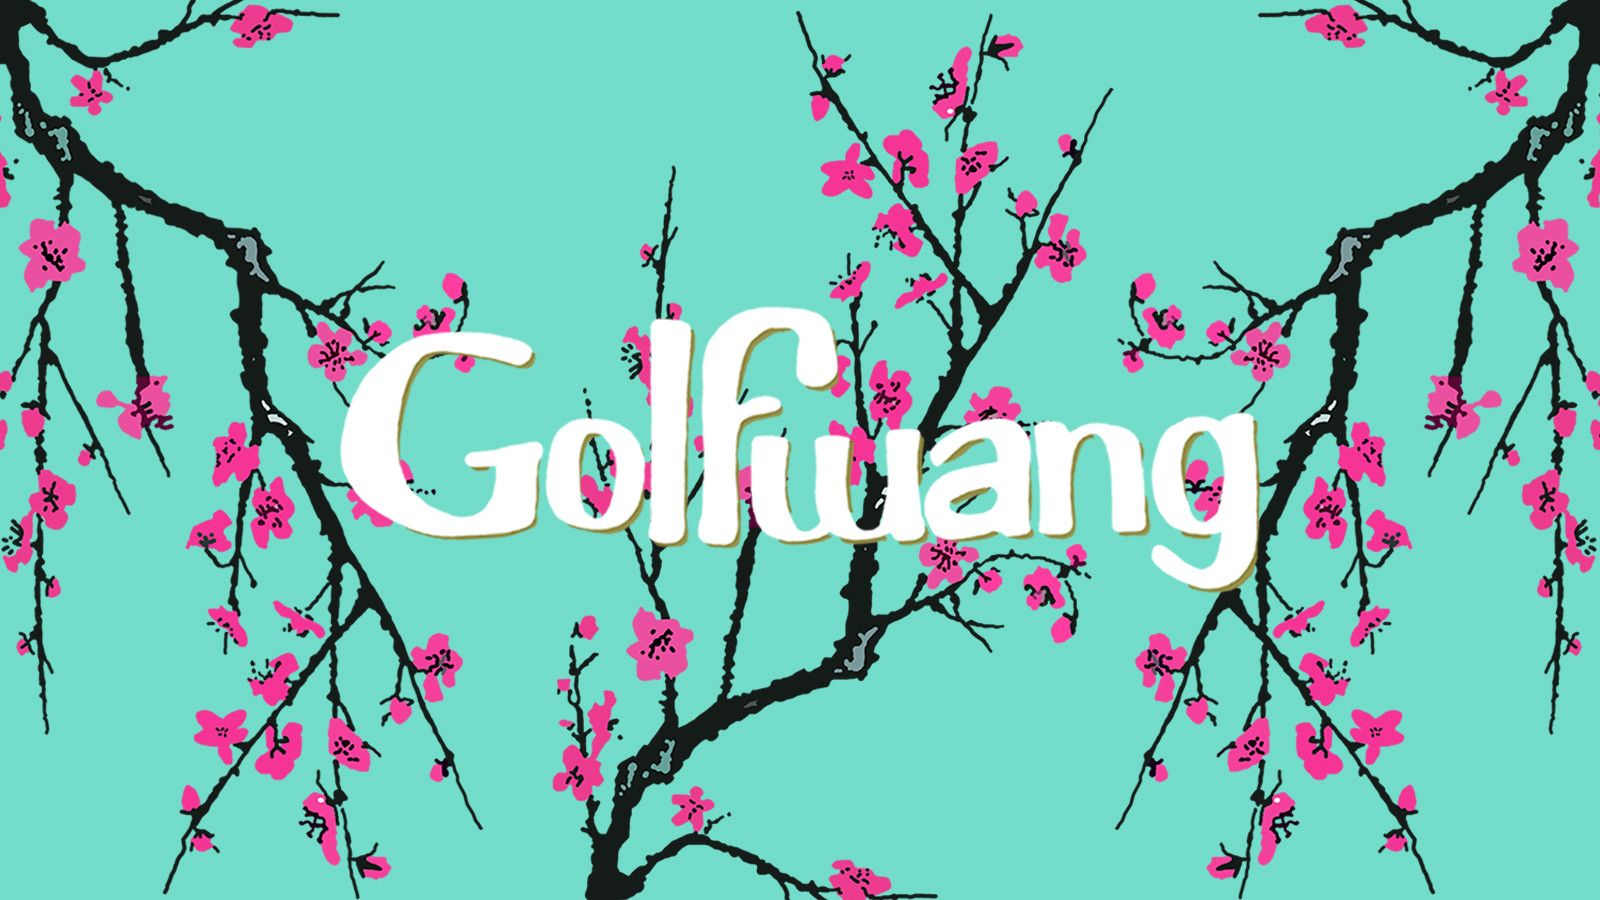 Golf Wang Wallpapers Top Free Golf Wang Backgrounds Wallpaperaccess